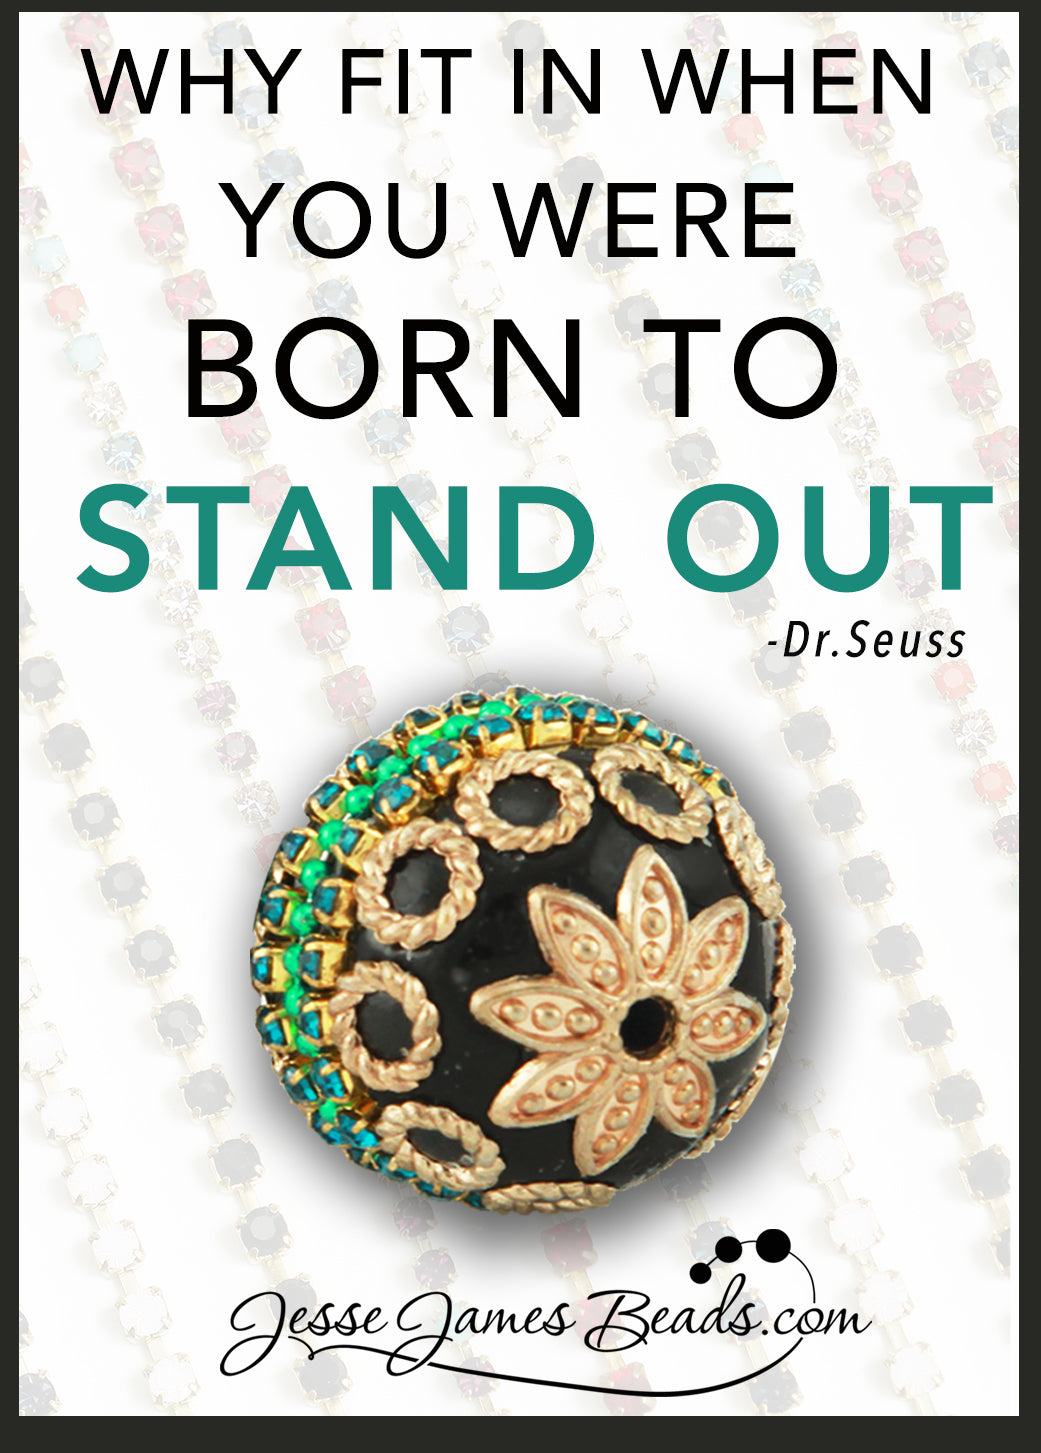 ...You were born to stand out. Beads by Jesse James